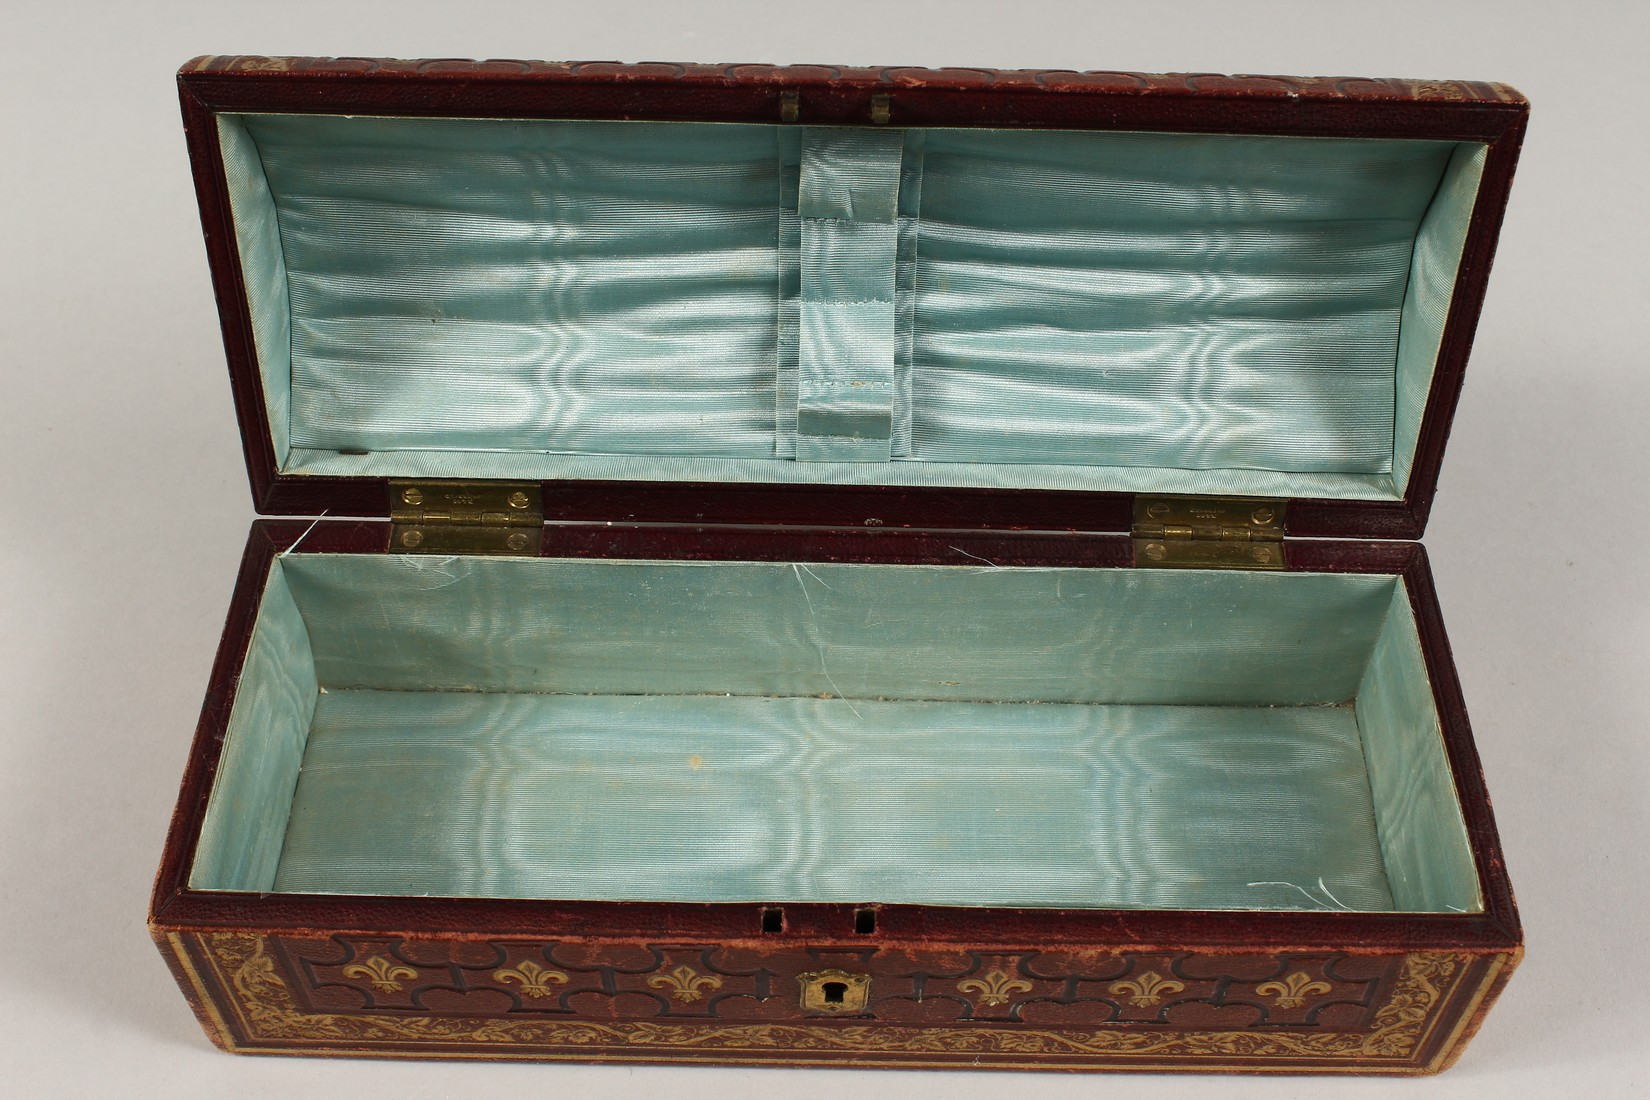 A FRENCH FLEUR D LYS DOMED LEATHER BOX 9.5ins long - Image 5 of 5